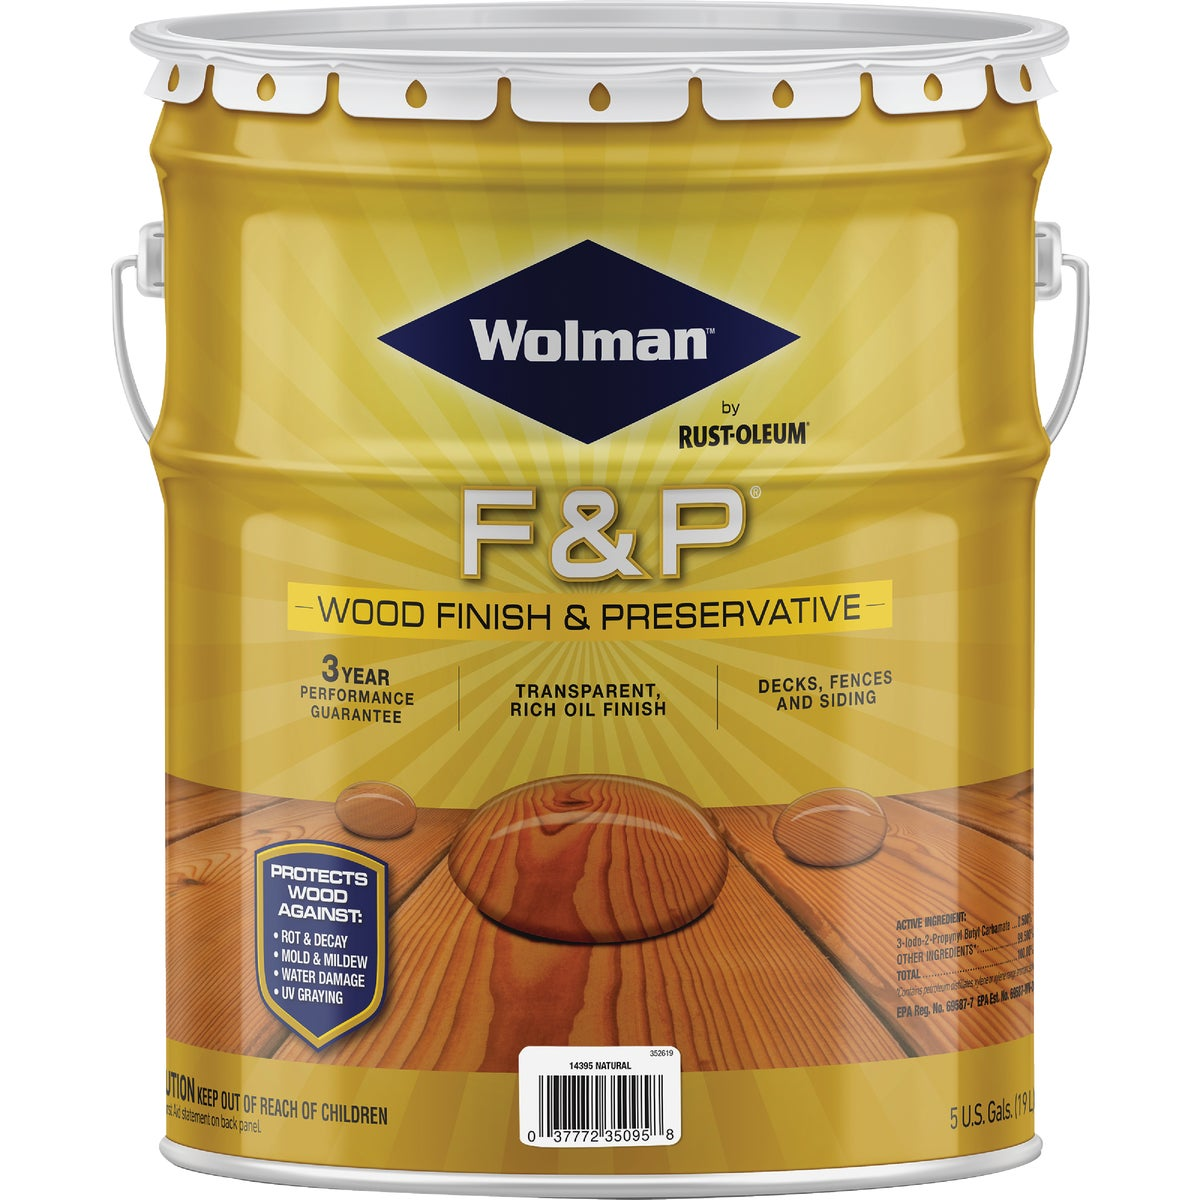 F&P NATURAL FINISH - 14395 by Rustoleum